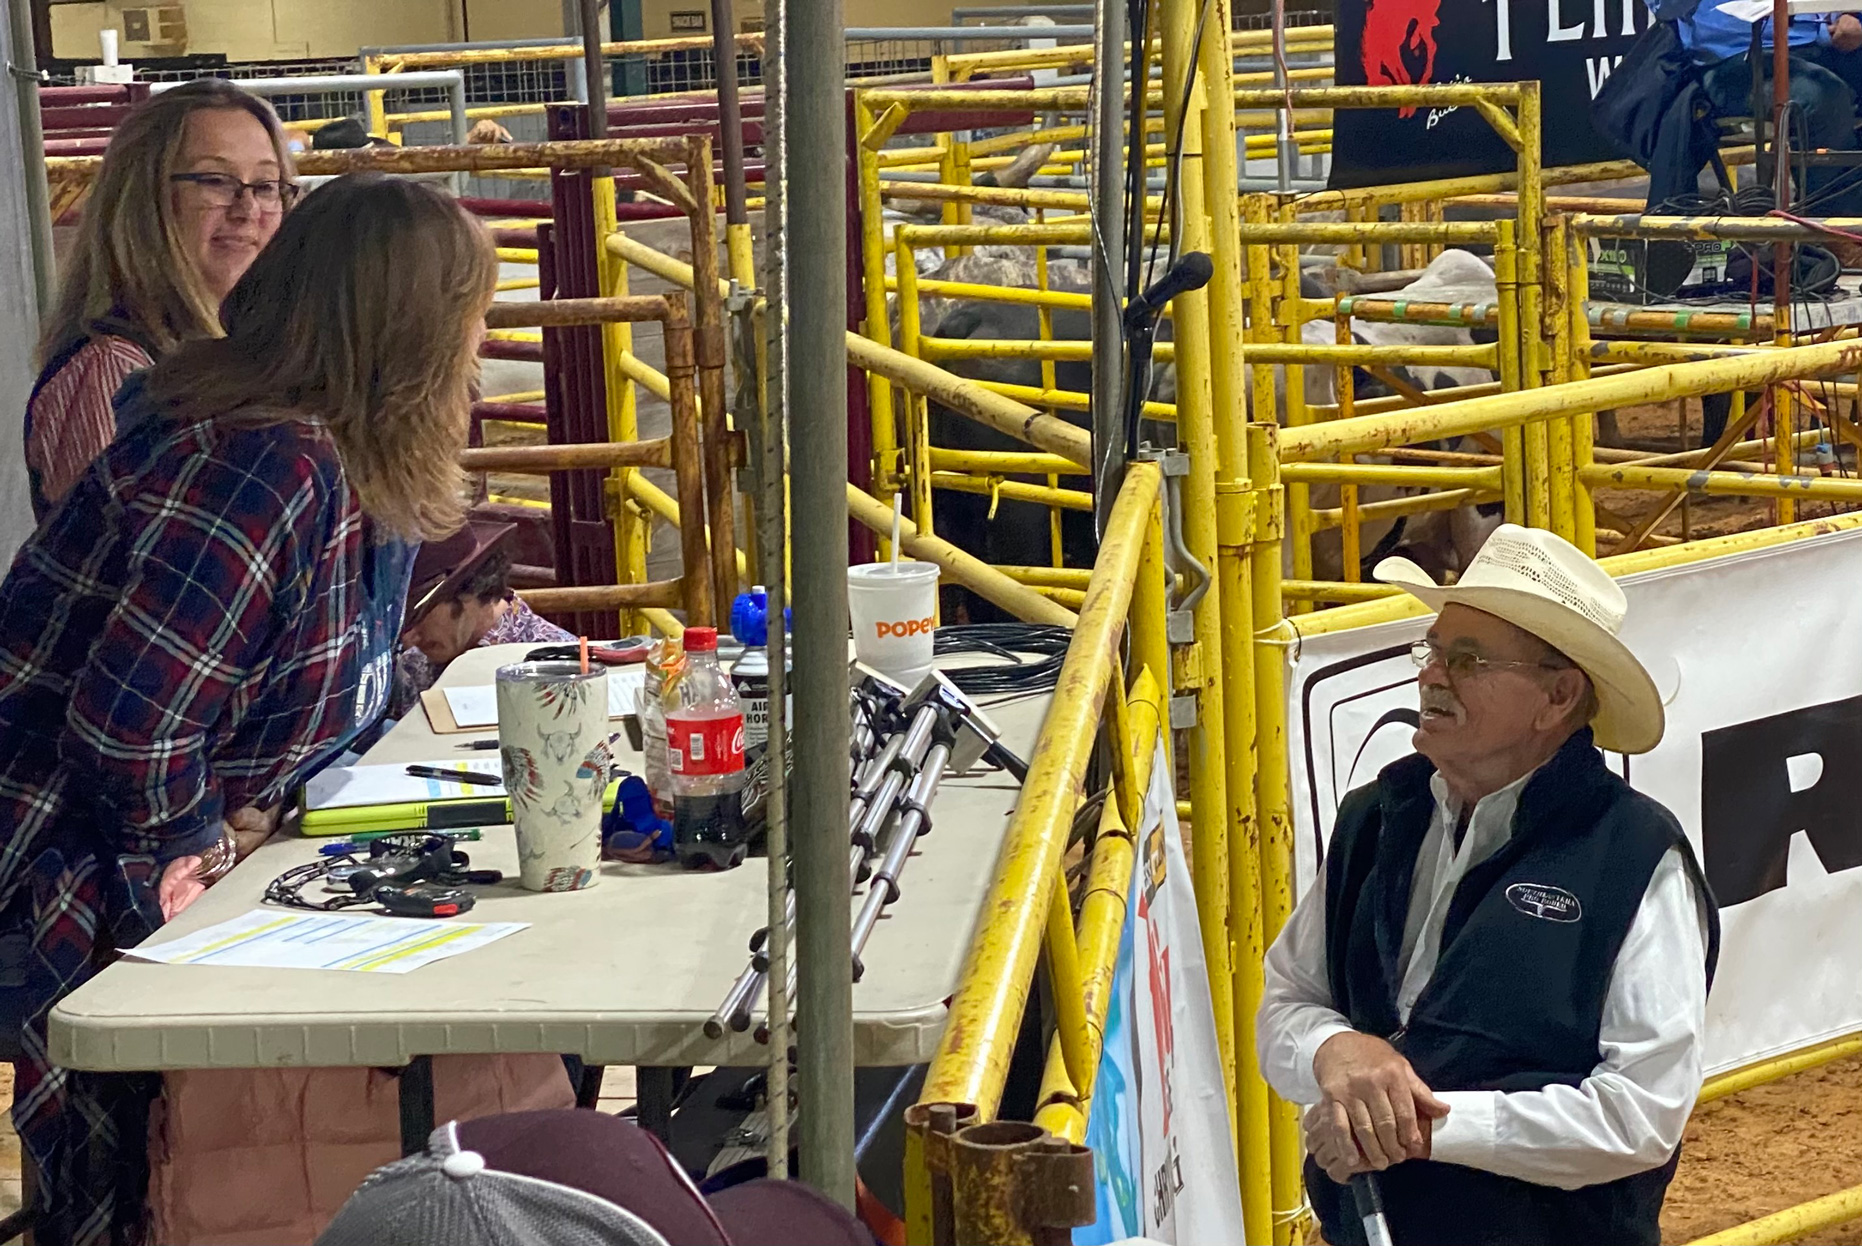 Ruben Lamb speaks to two audience members at the Southeastern Pro Rodeo in 2021.